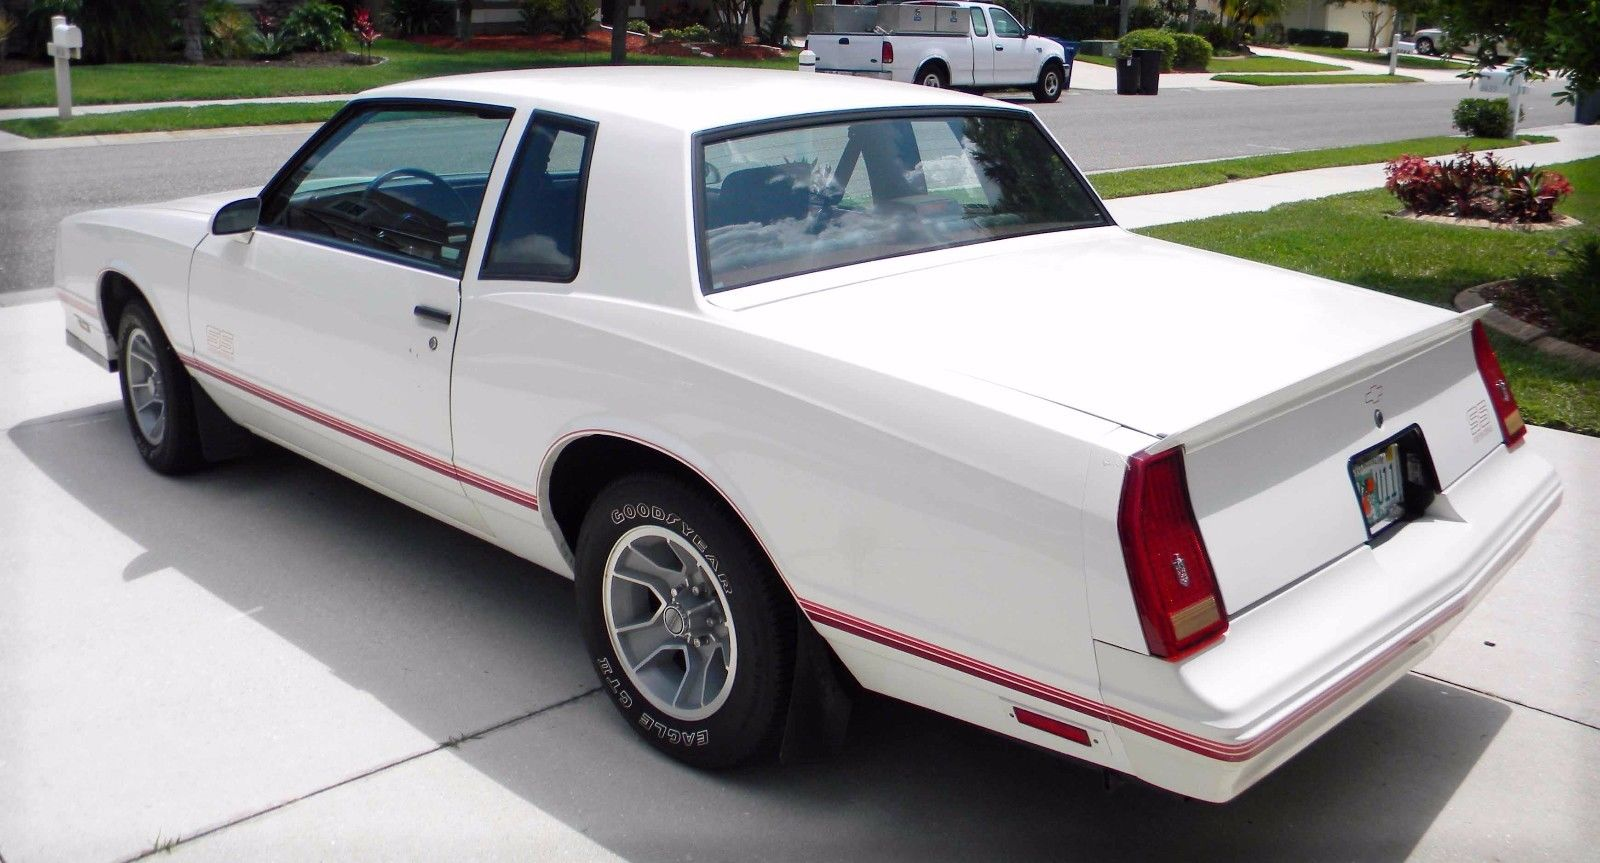 1987 Chevrolet Monte Carlo SS Rear 3/4 View